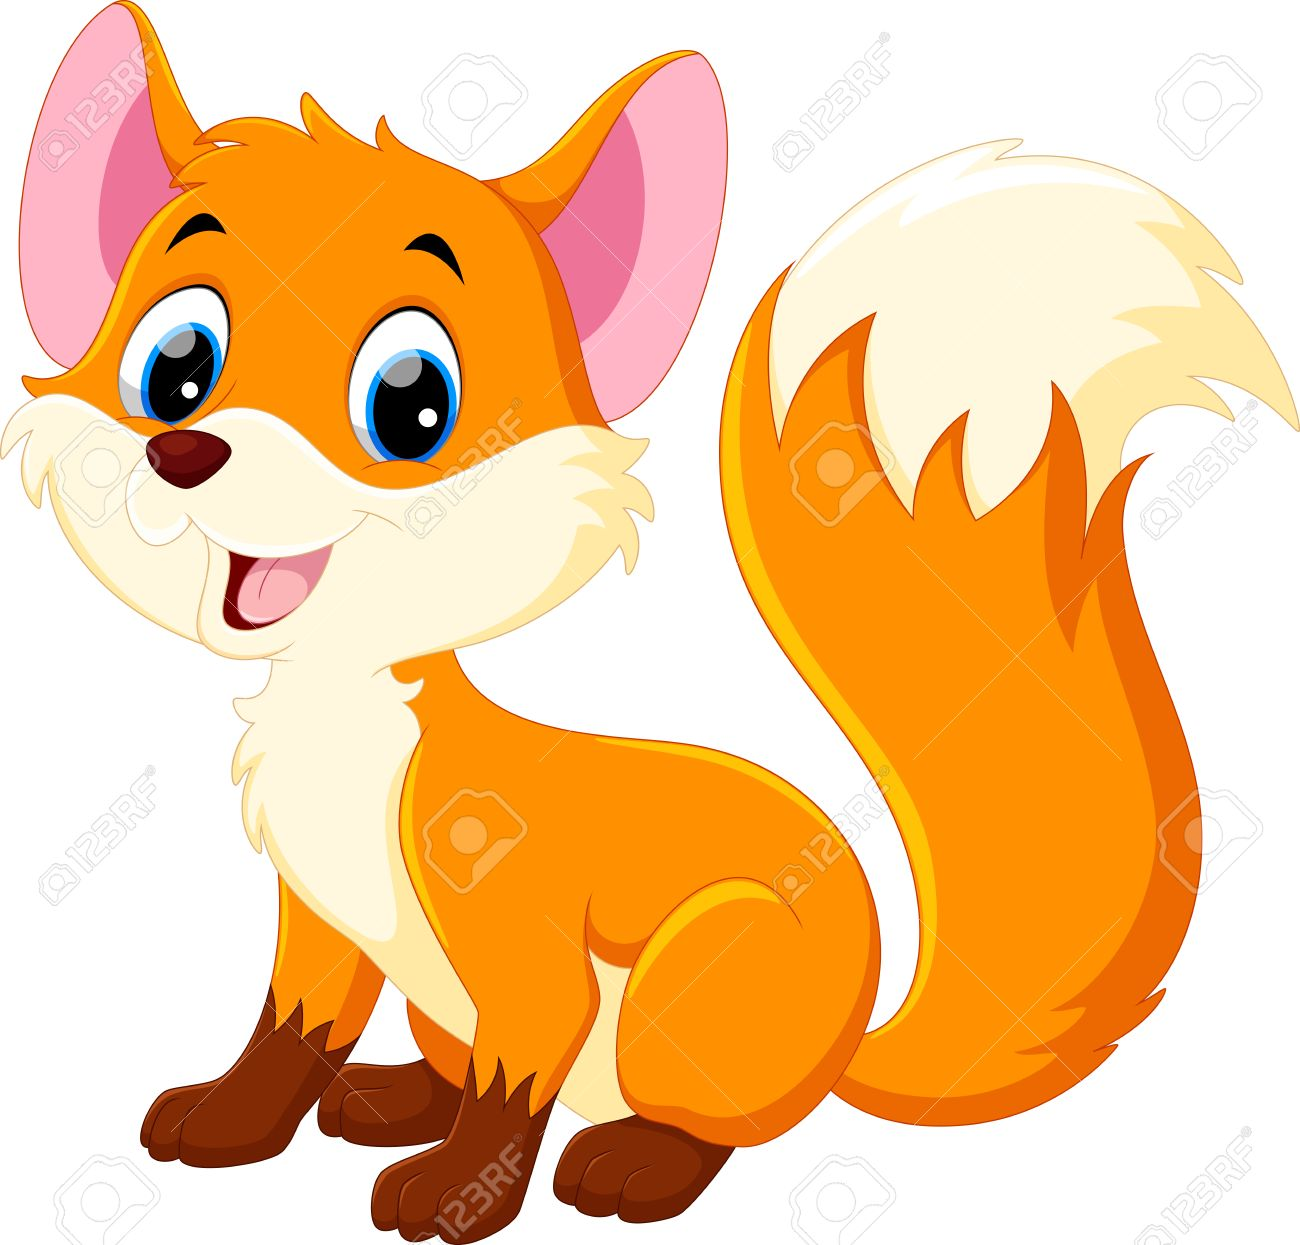 1300x1245 Cute Baby Fox Cartoon Royalty Free Cliparts, Vectors, And Stock